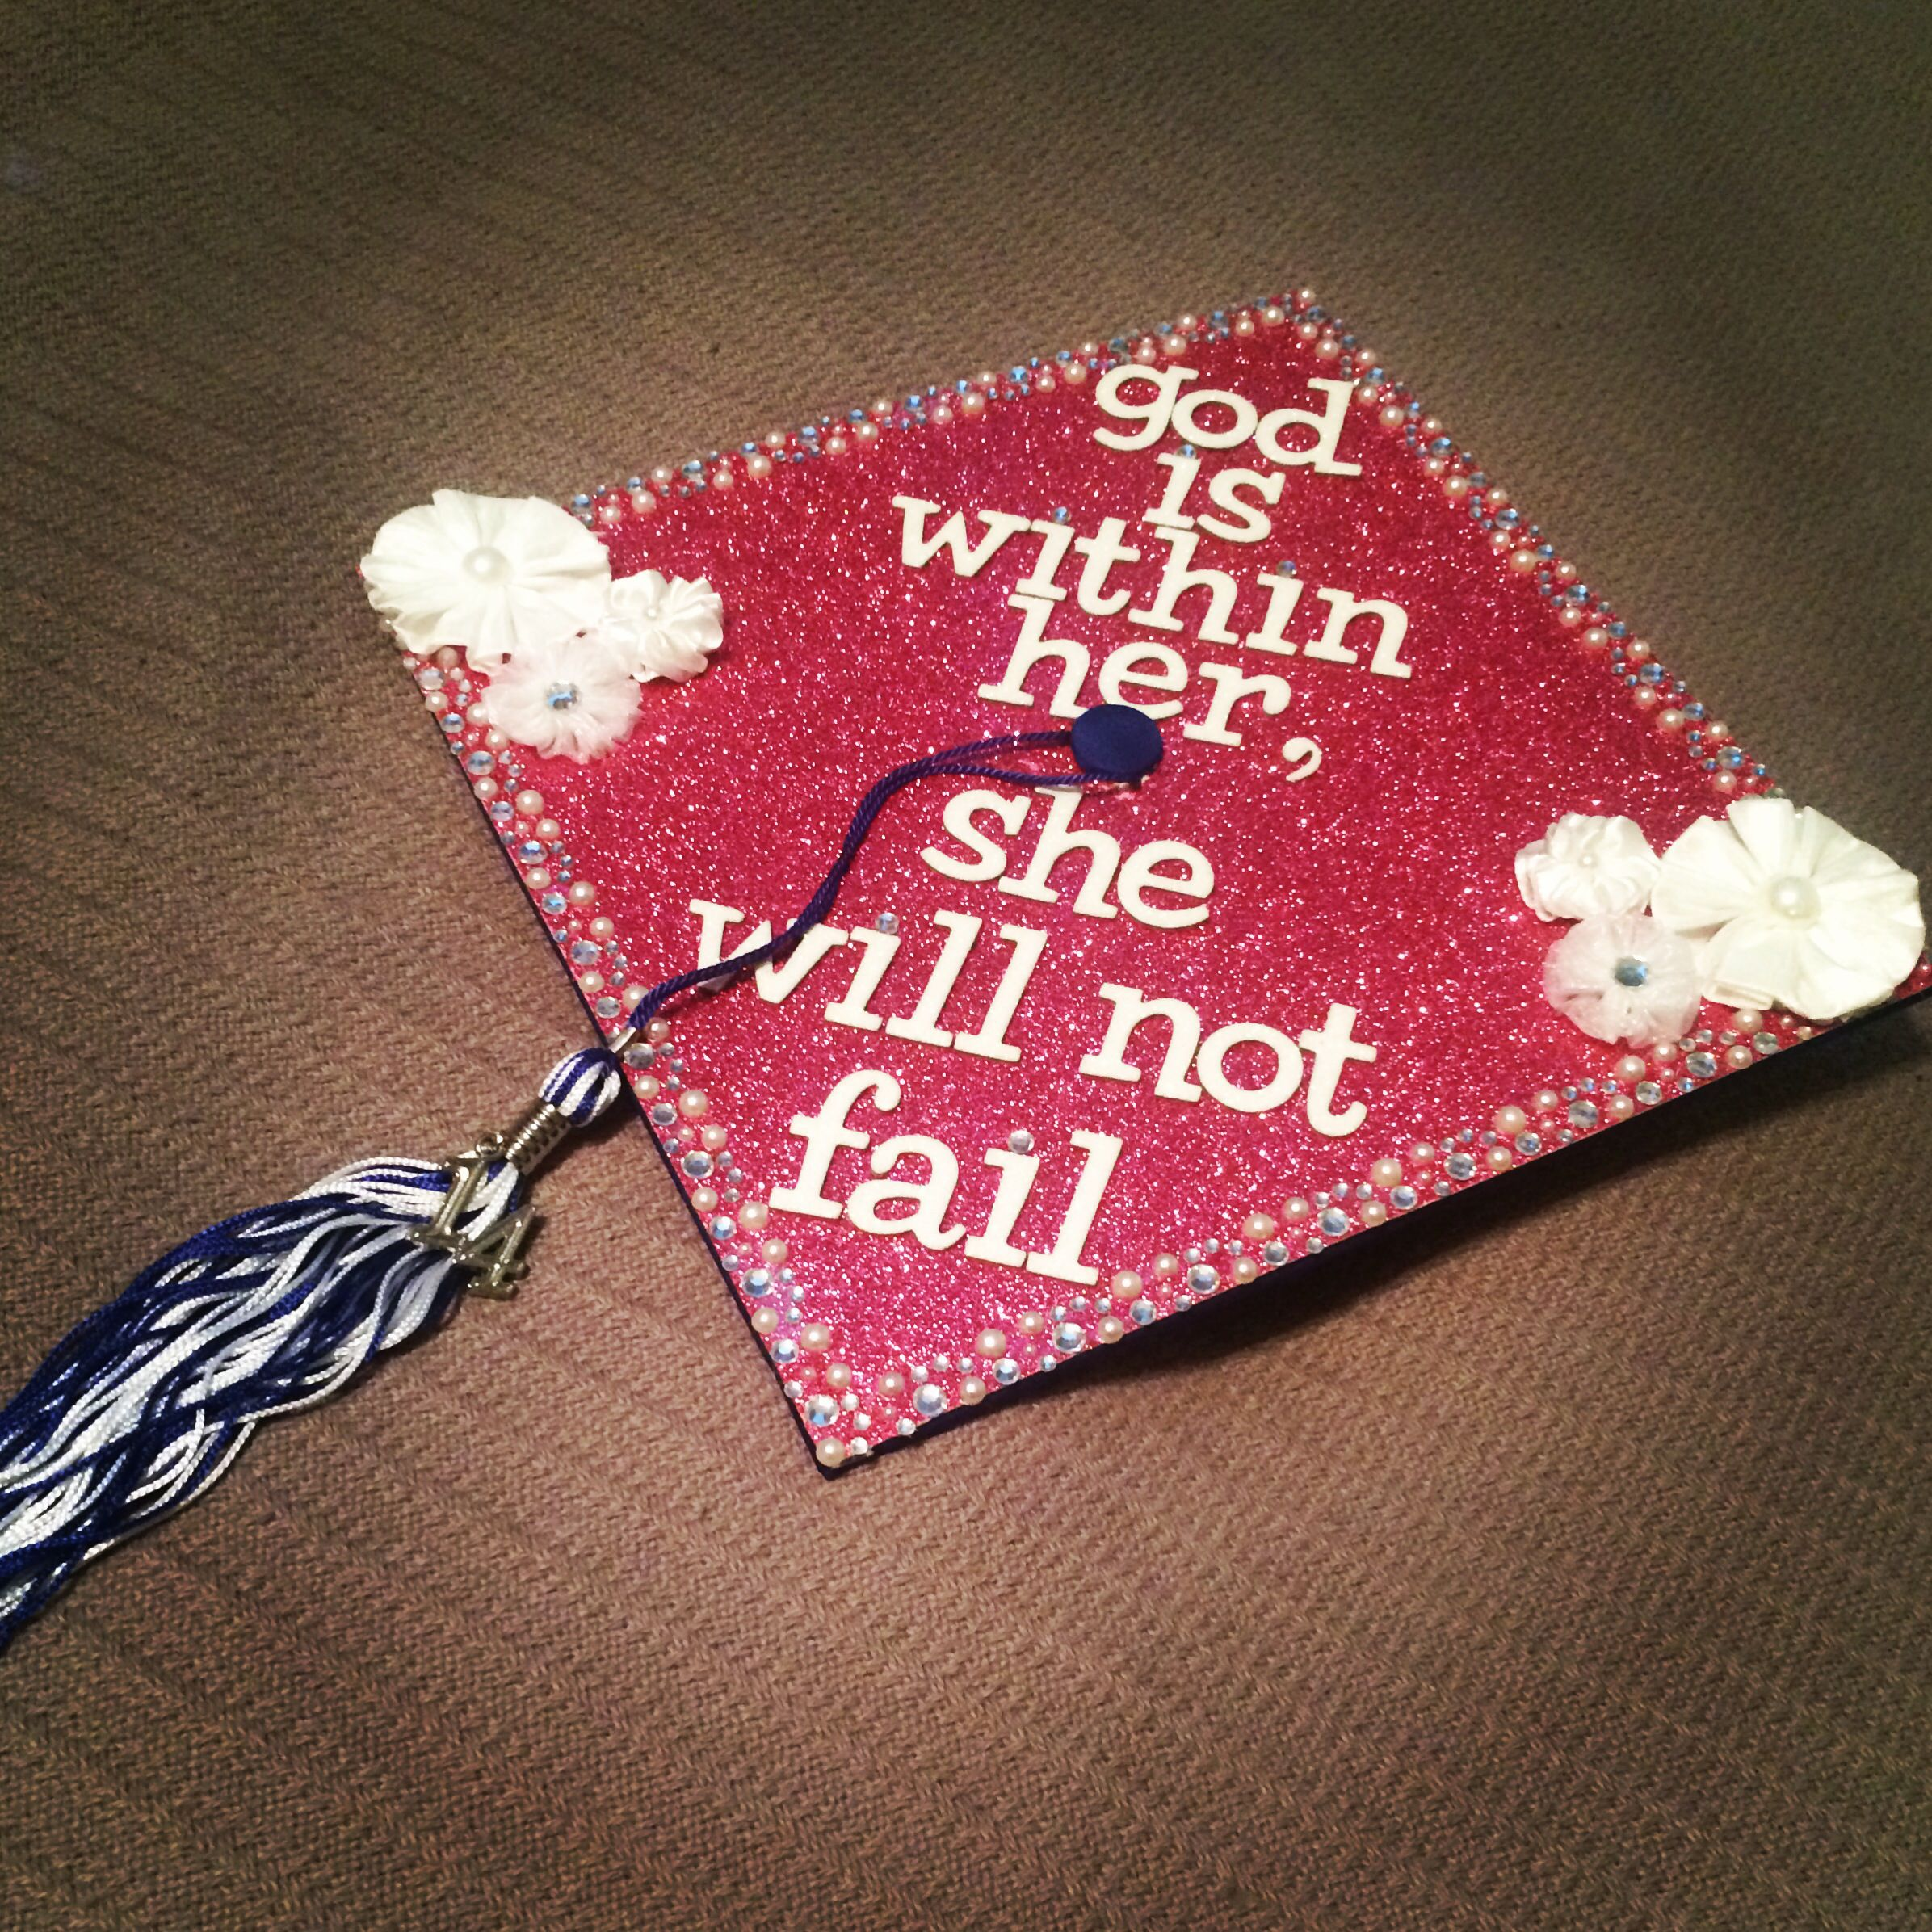 Decorating graduation cap ideas for teachers - My Graduation Cap God Is Within Her She Will Not Fail